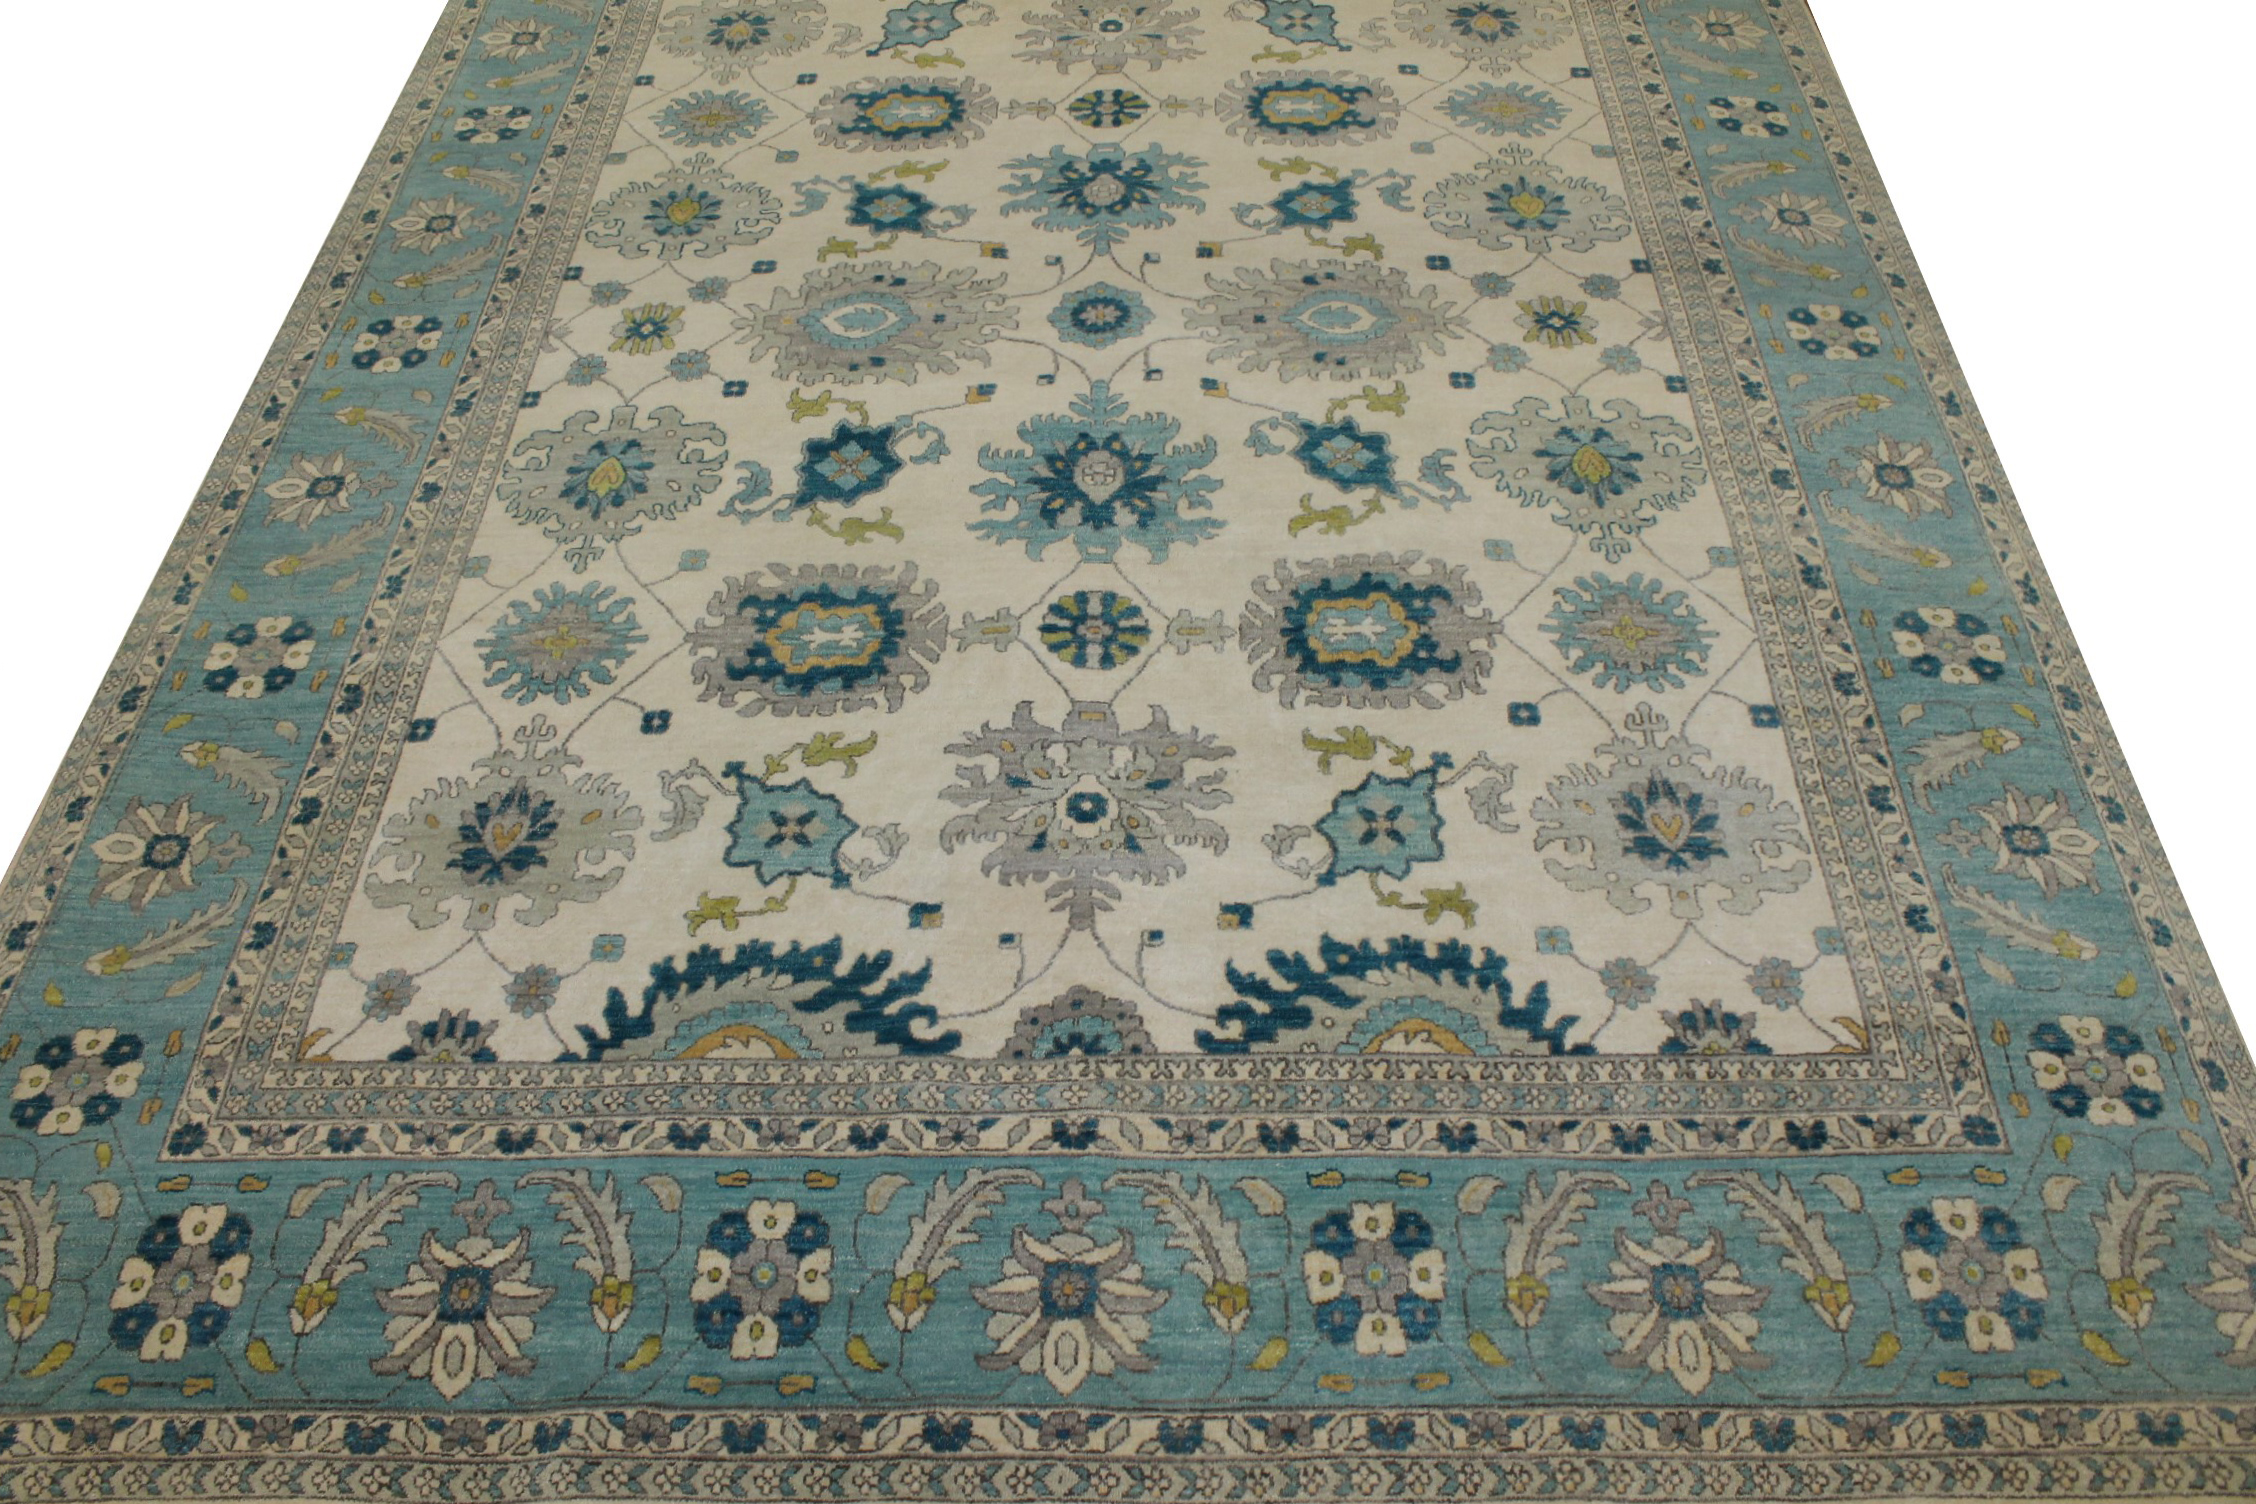 9x12 Traditional Hand Knotted Wool Area Rug - MR023182